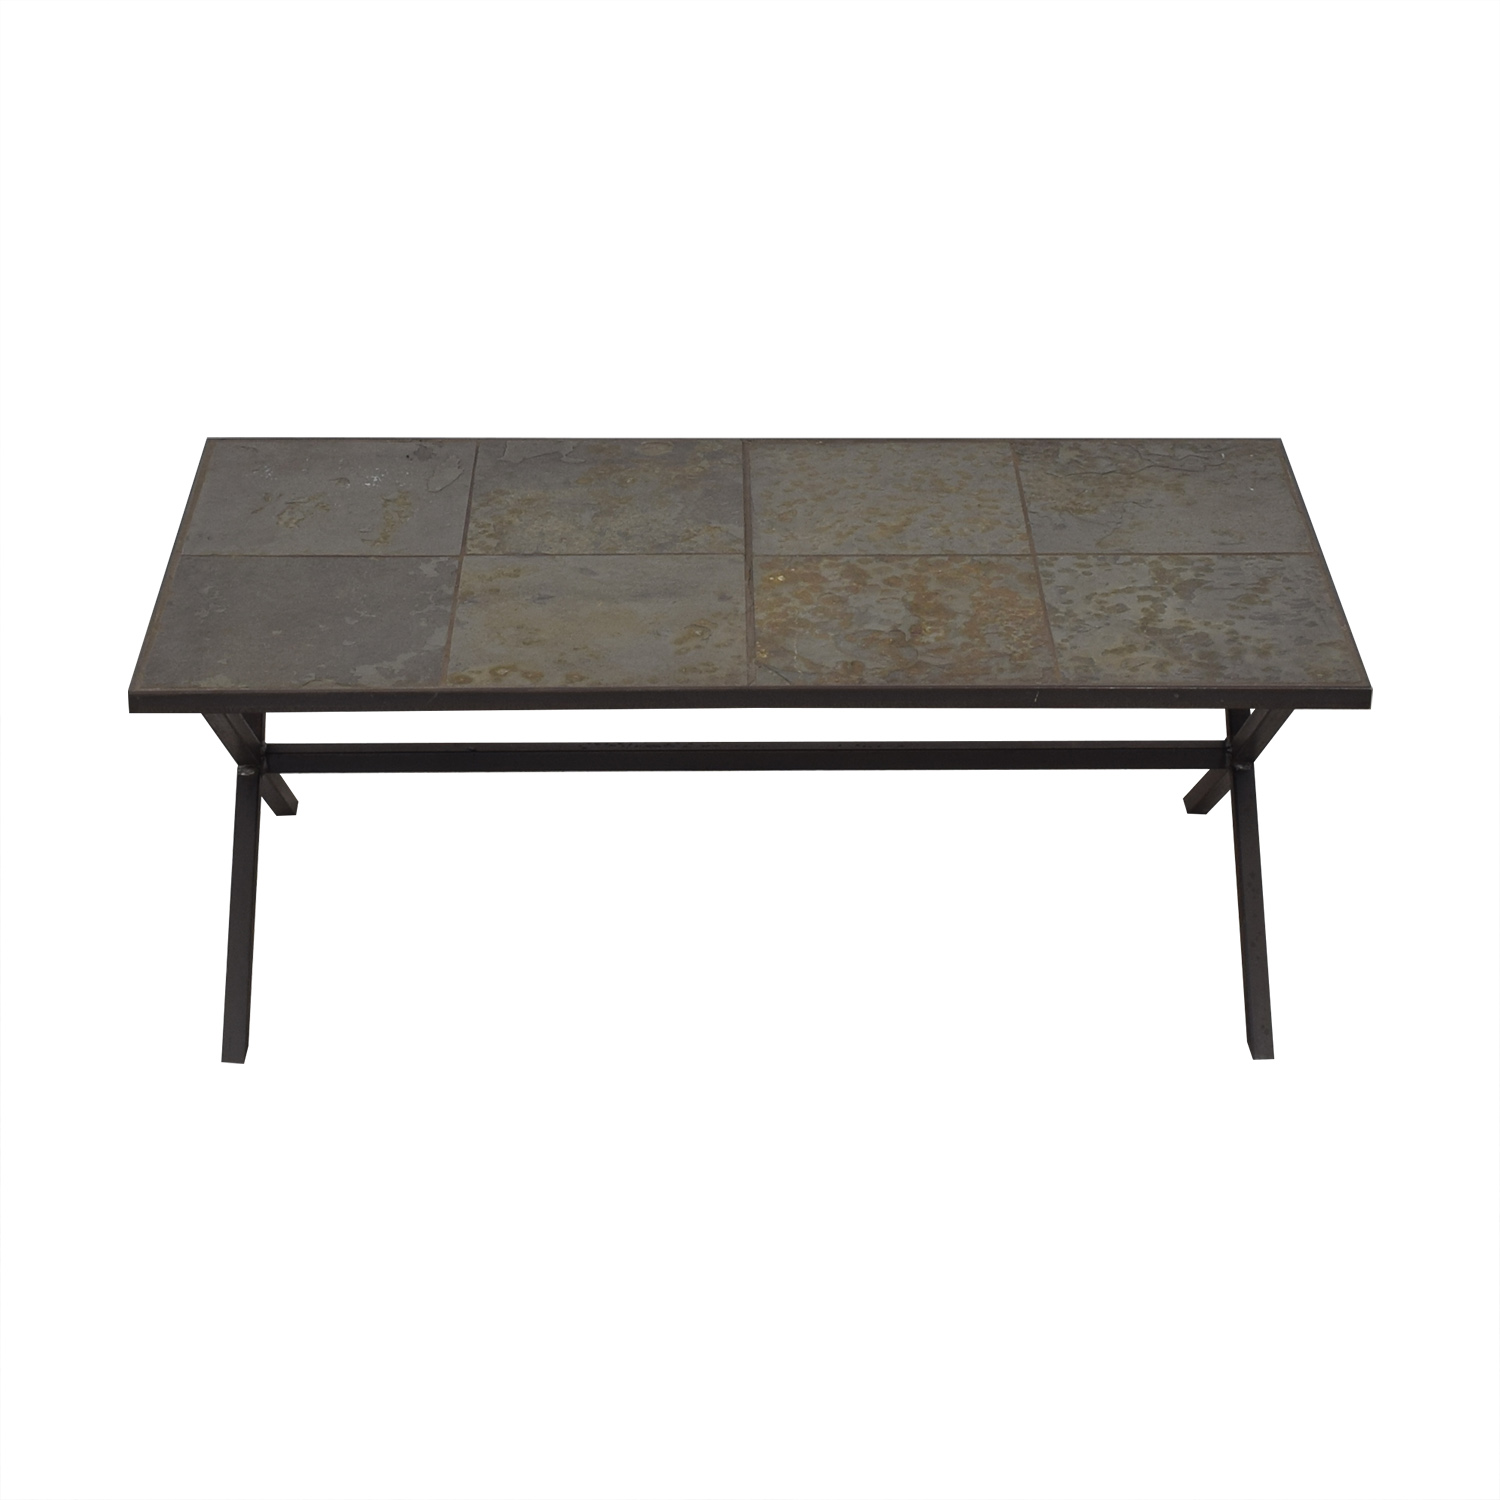 Crate & Barrel Crate & Barrel Coffee Table used